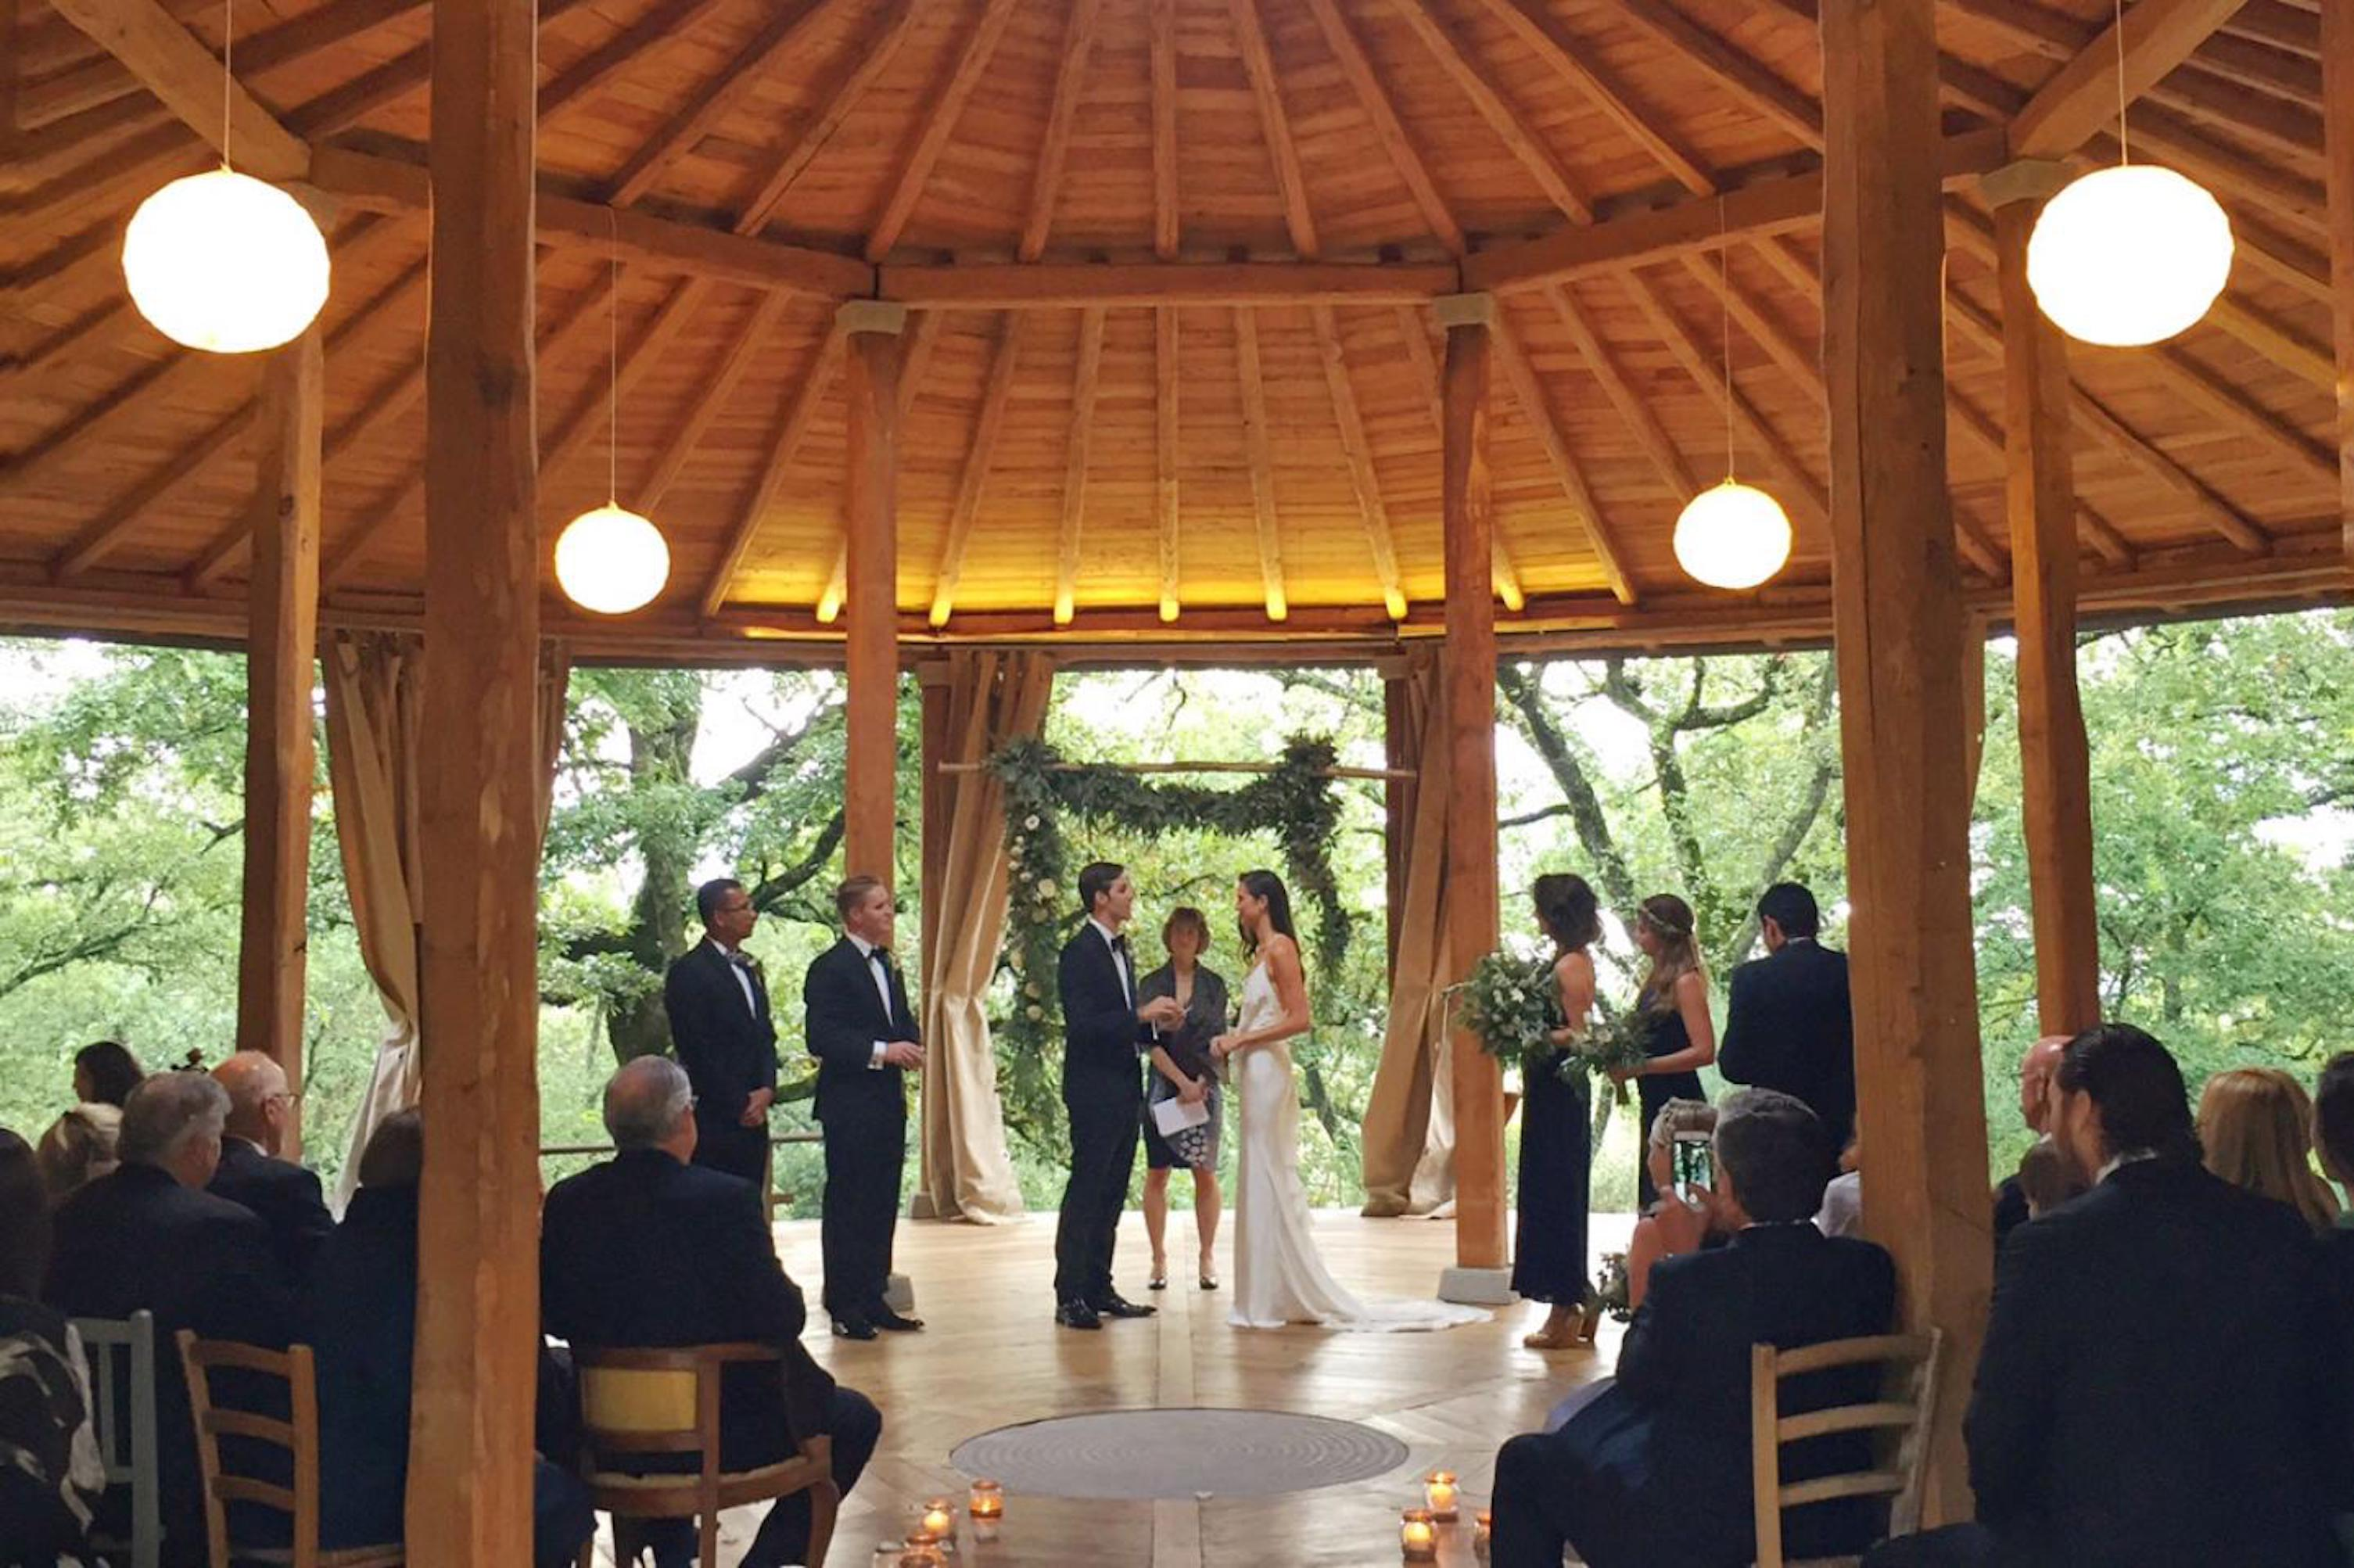 These Magical Airbnb Venues Are Perfect For Your Wedding